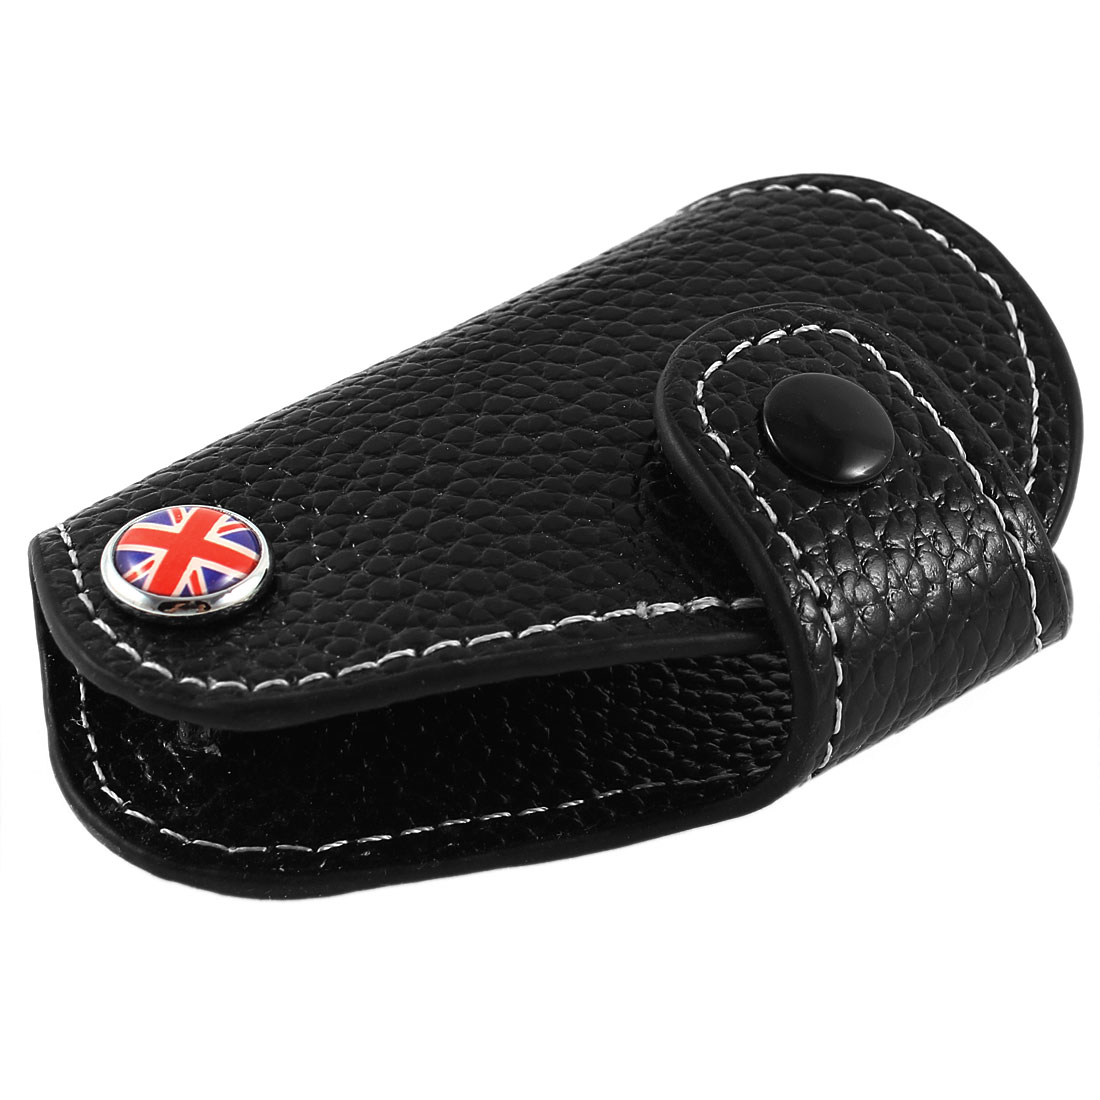 Union Jack Flag Pattern Black Car Key Remote Control Carry Bag for BMW Mini Cooper